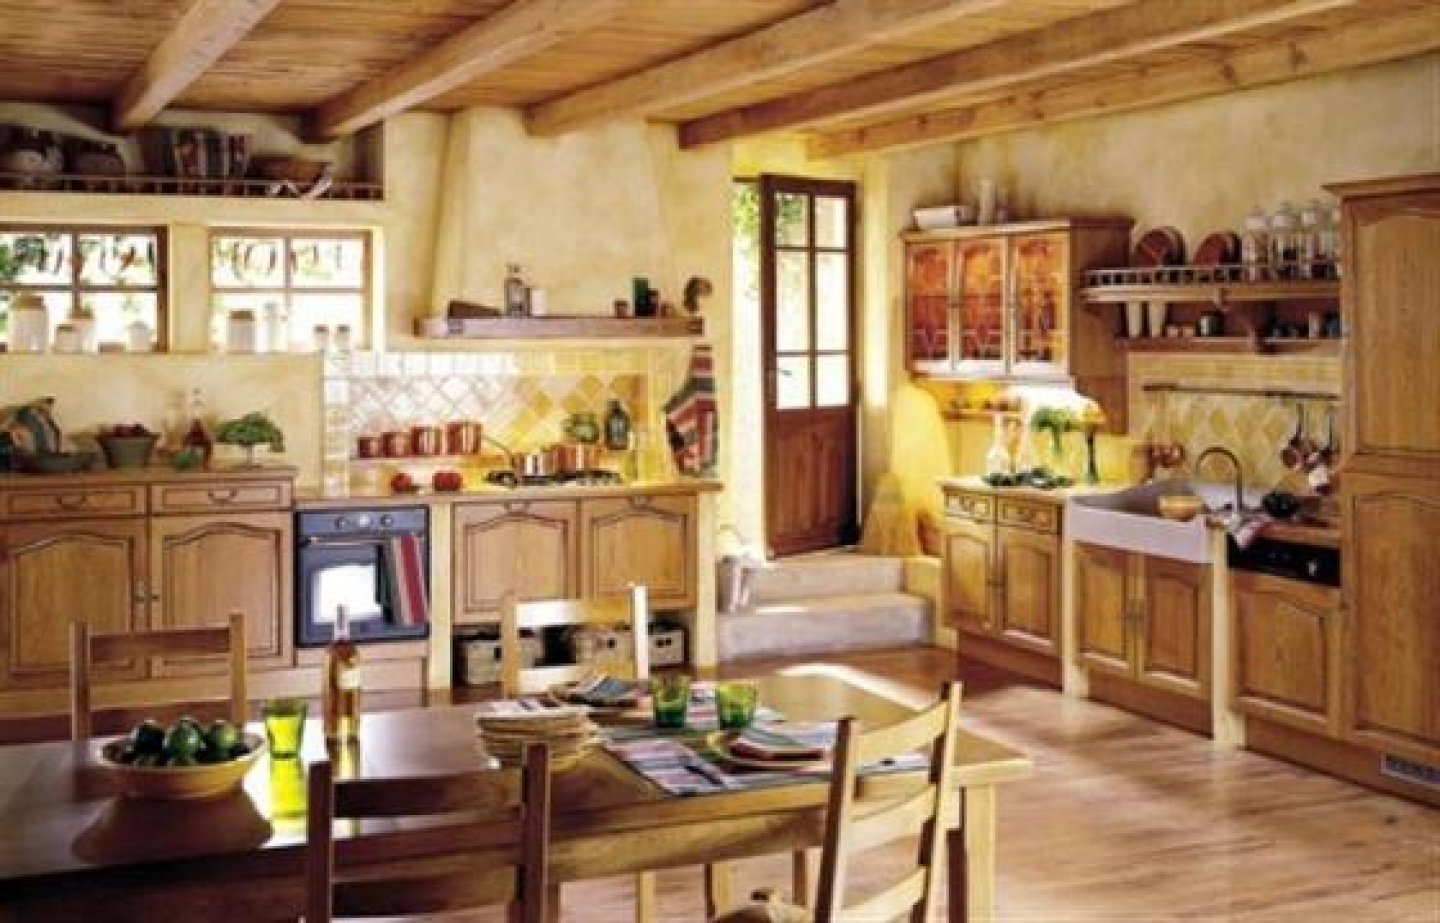 French country kitchen Blender